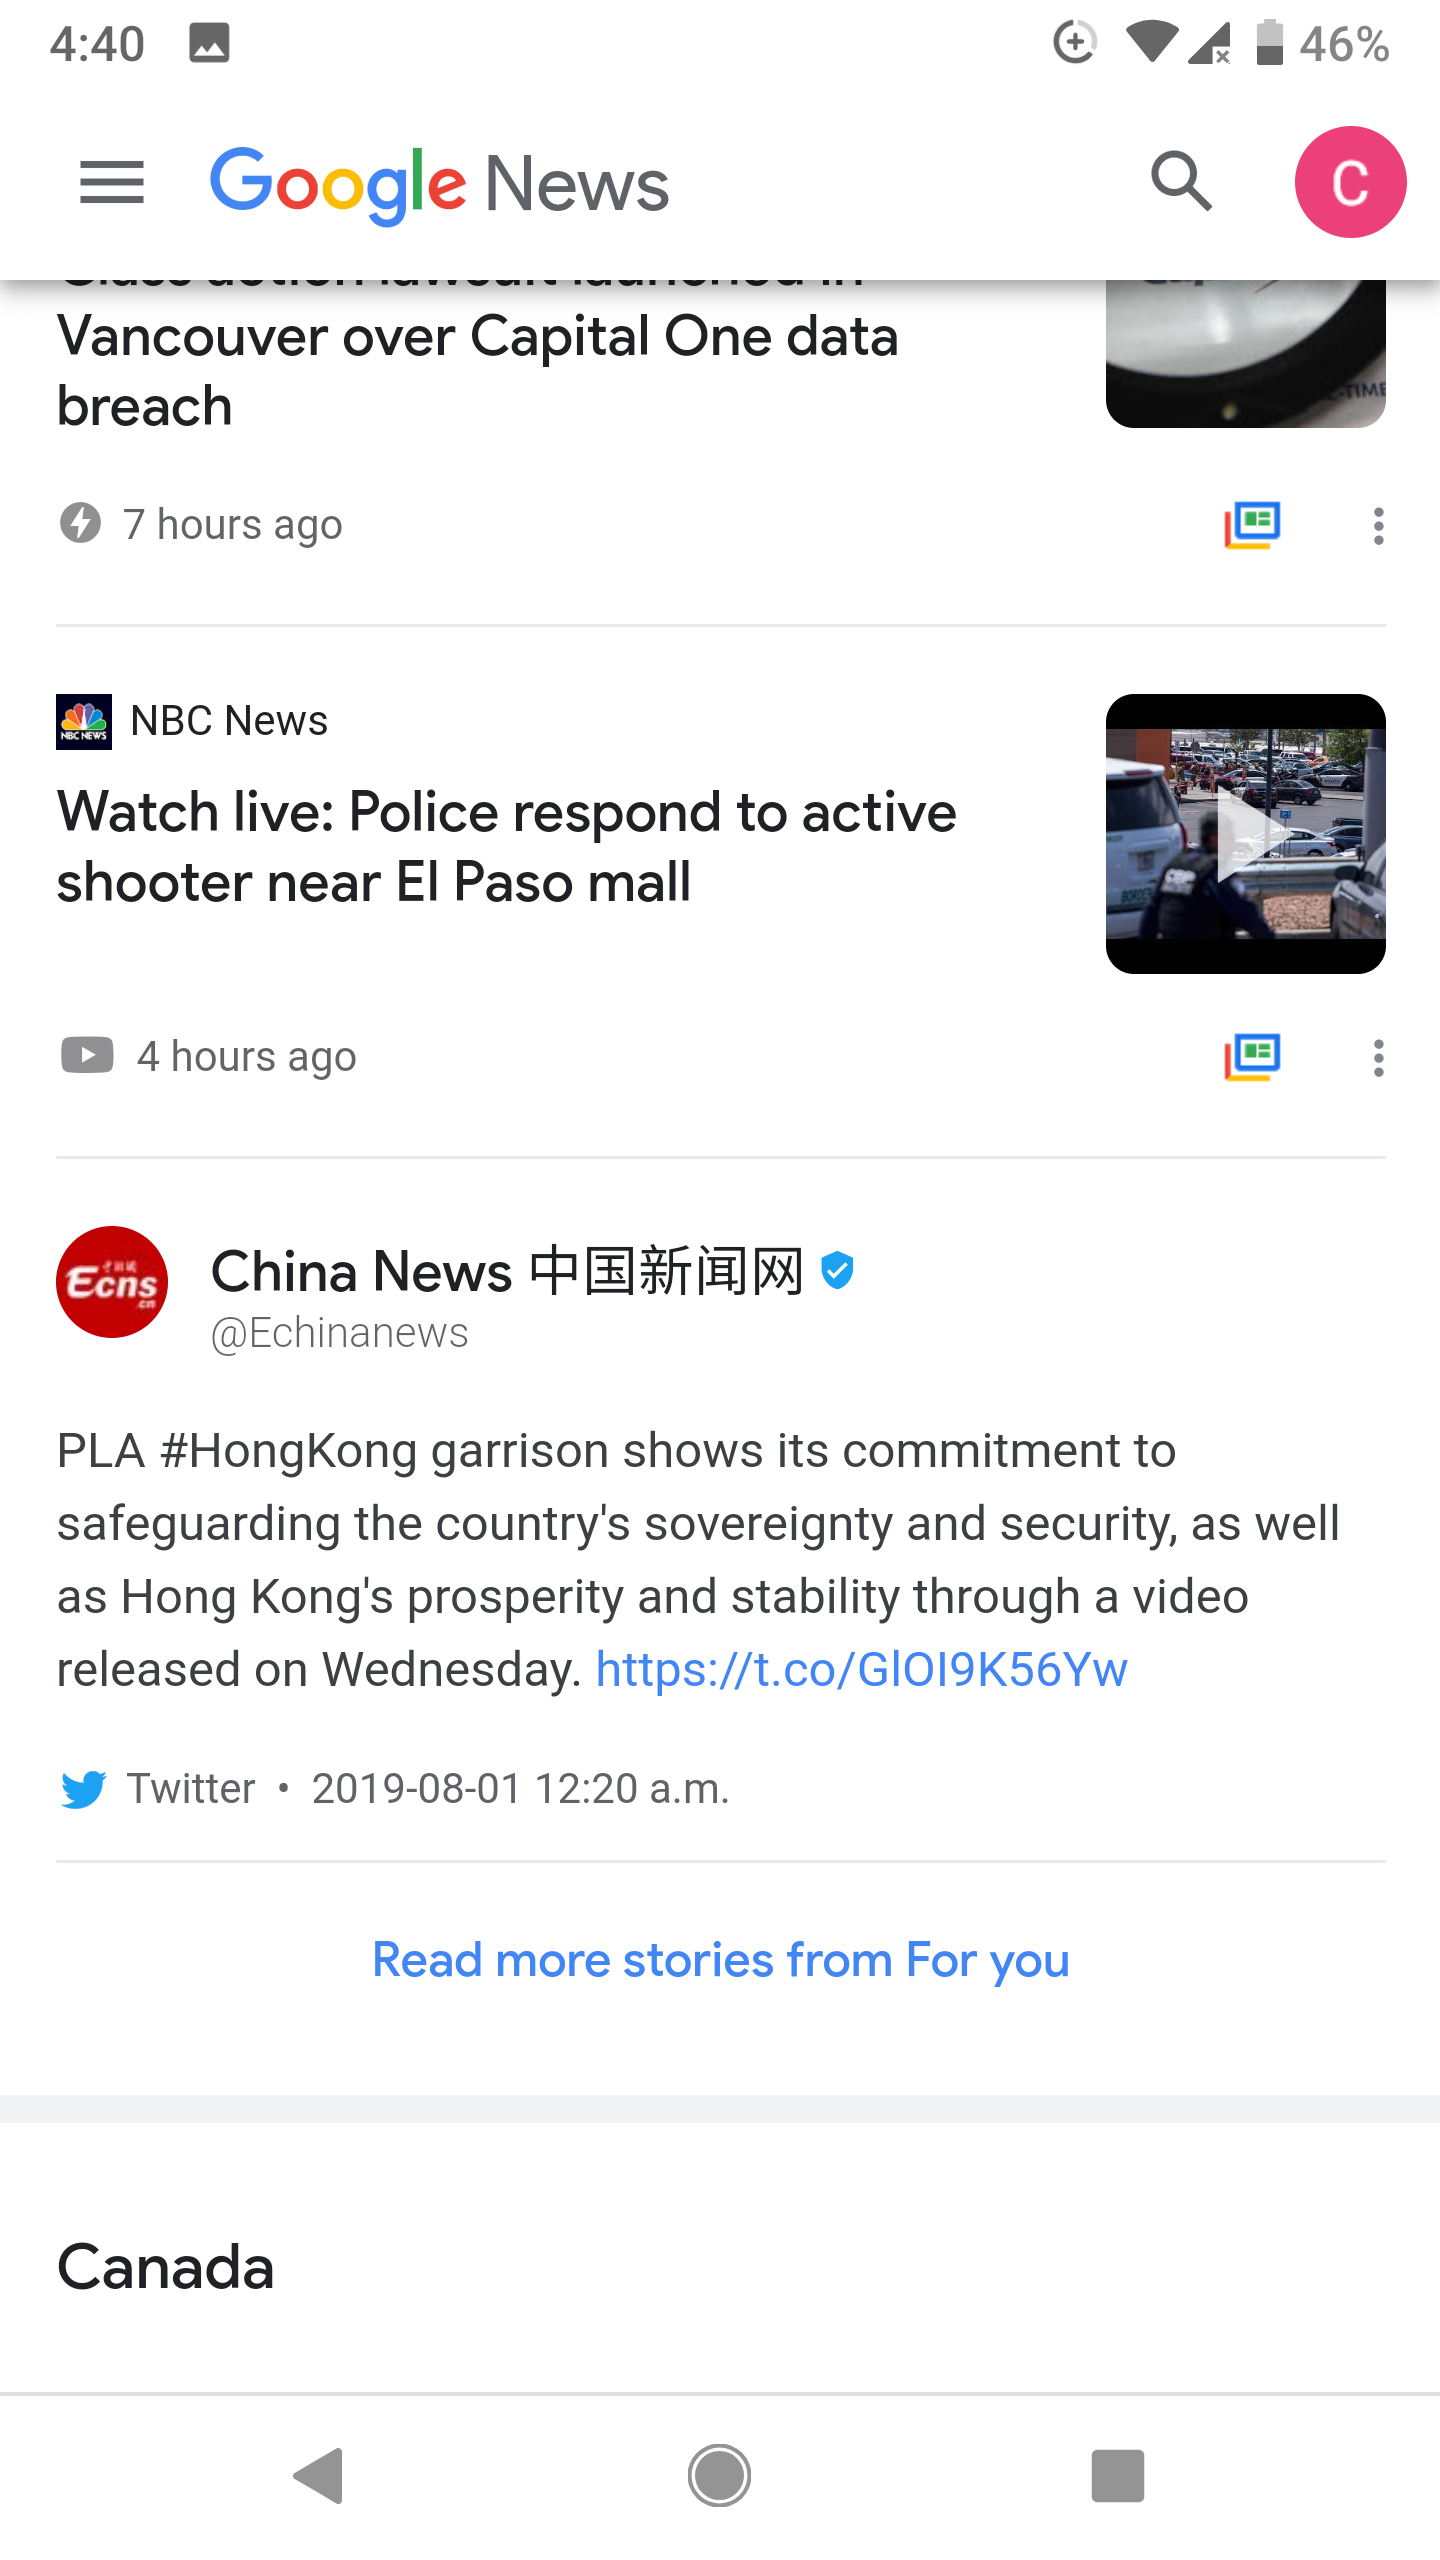 I just got China propiganda on Google News and I can not block it